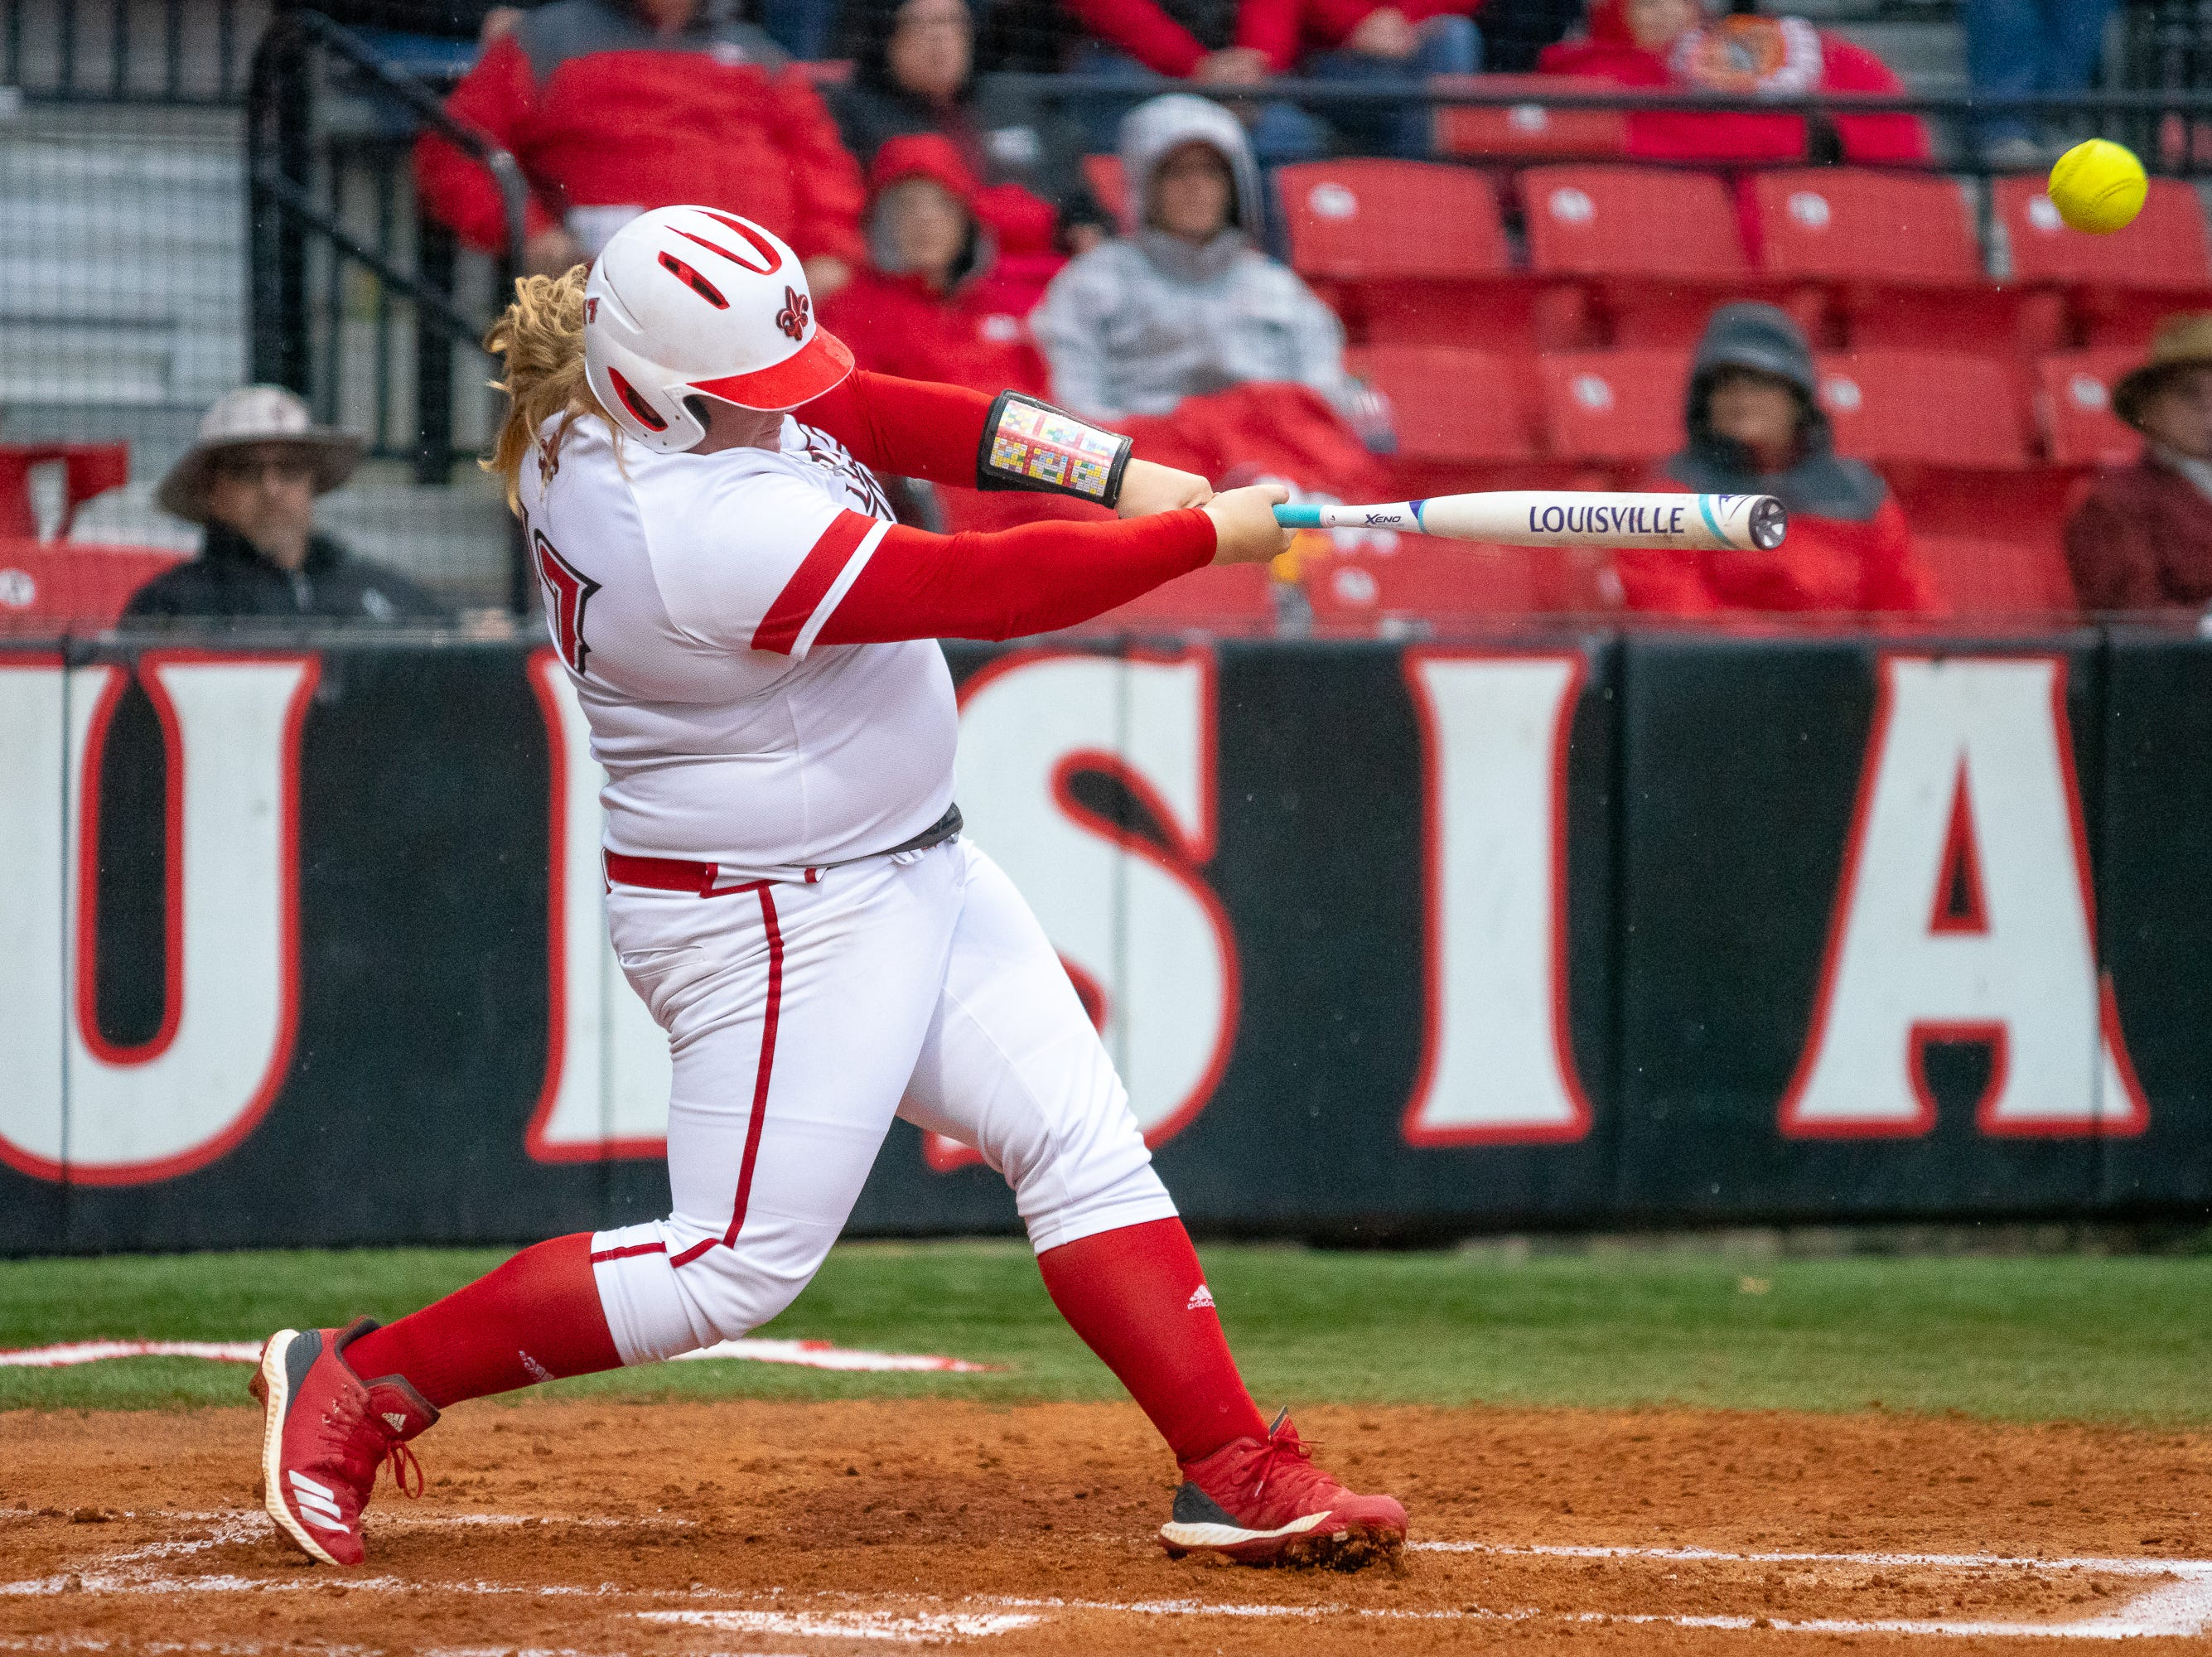 UL's Bailey Curry hits the ball high as the Ragin' Cajuns take on the Troy Trojans at Lamson Park, Yvette Girouard Field on Friday, March 15, 2019.